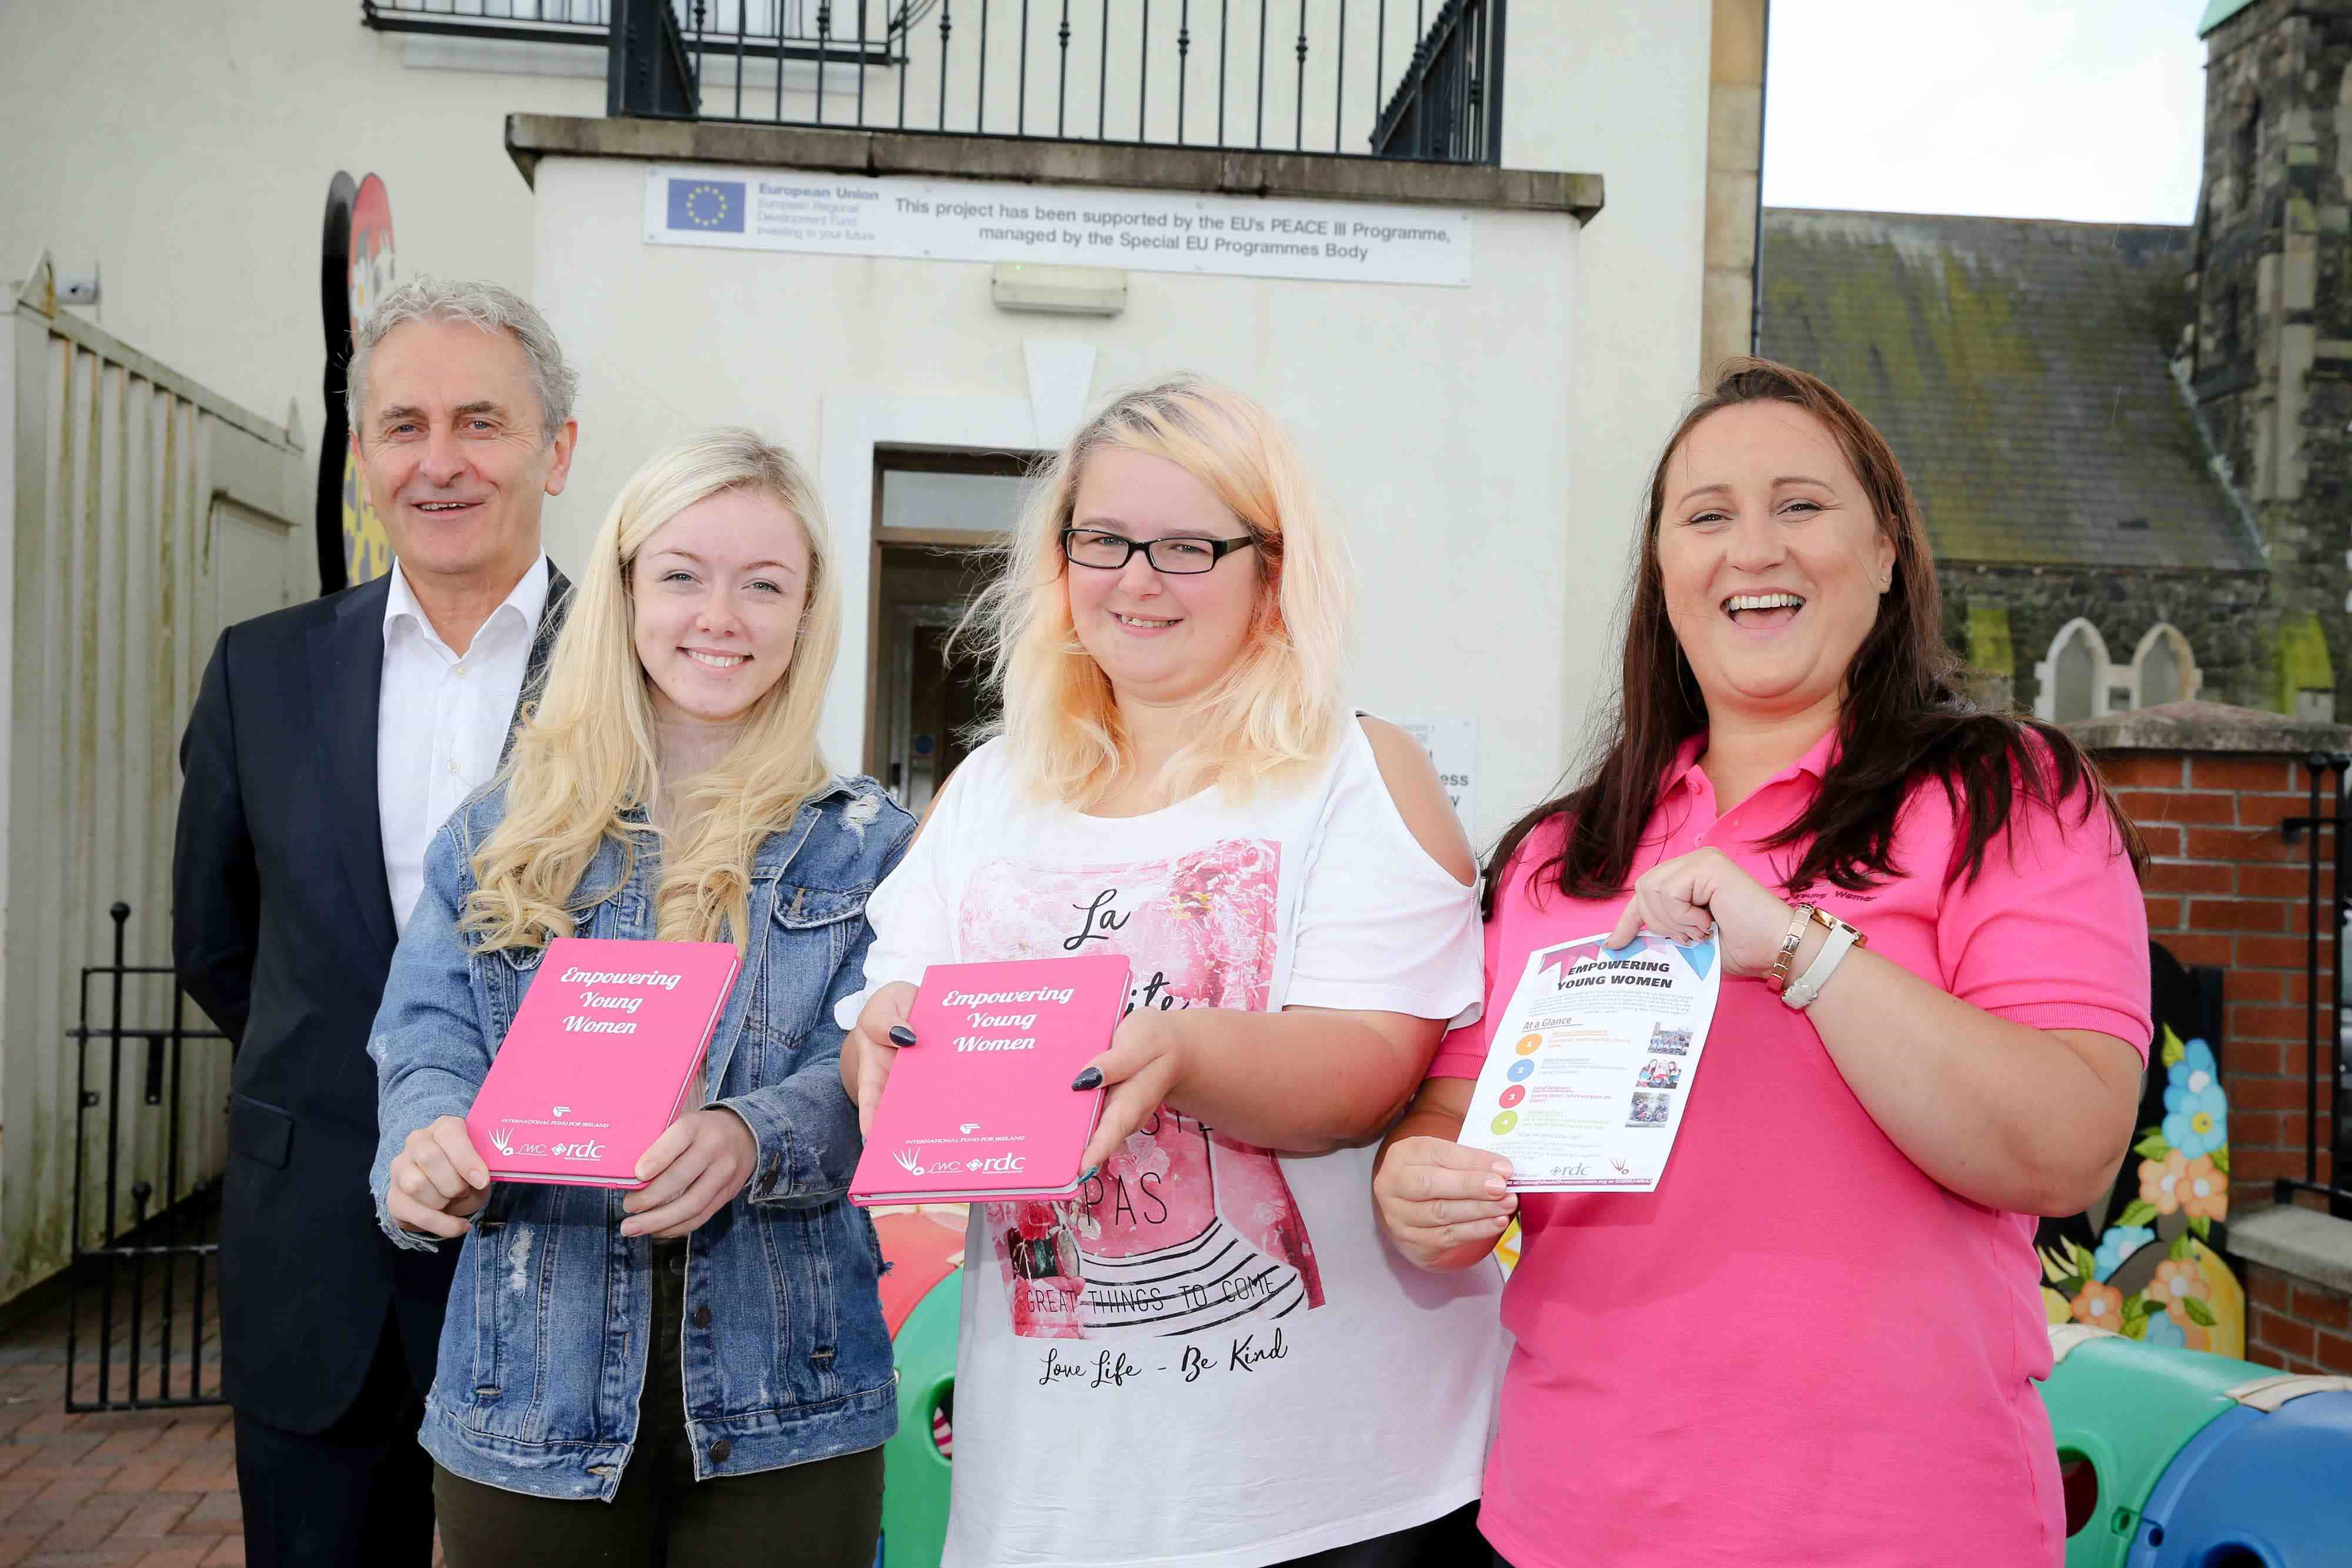 New project offers brighter future for young women in West Belfast